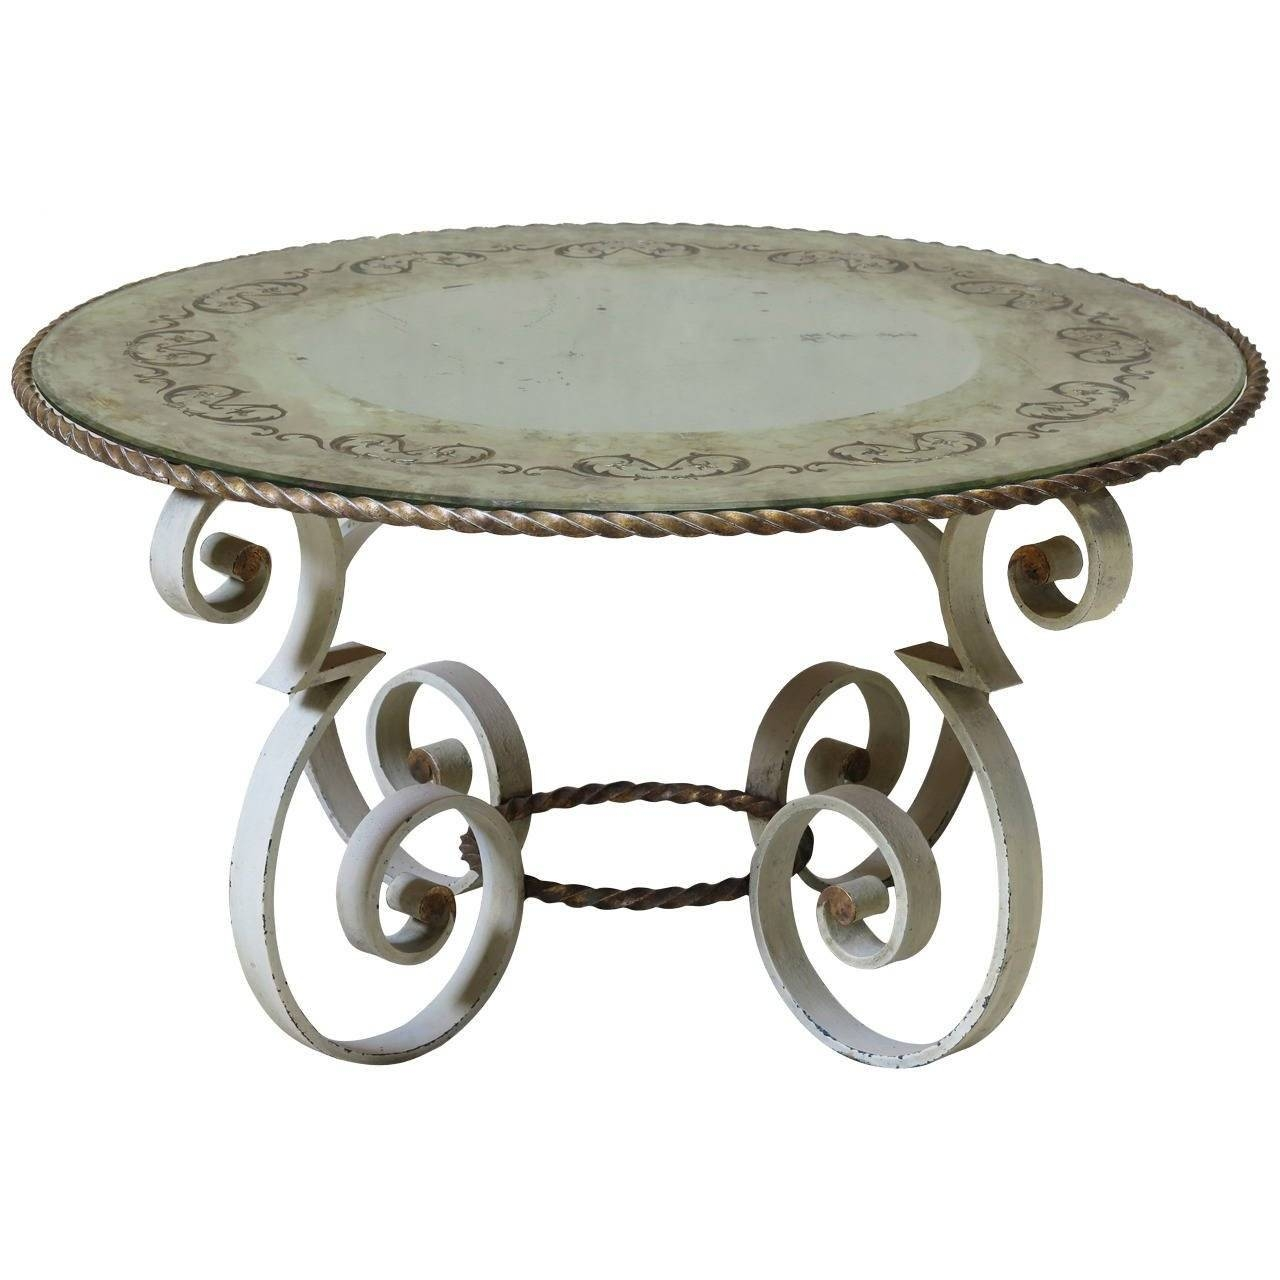 French 1940S Wrought Iron Coffee Table With Grey Marble For Sale with regard to Wrought Iron Coffee Tables (Image 4 of 30)